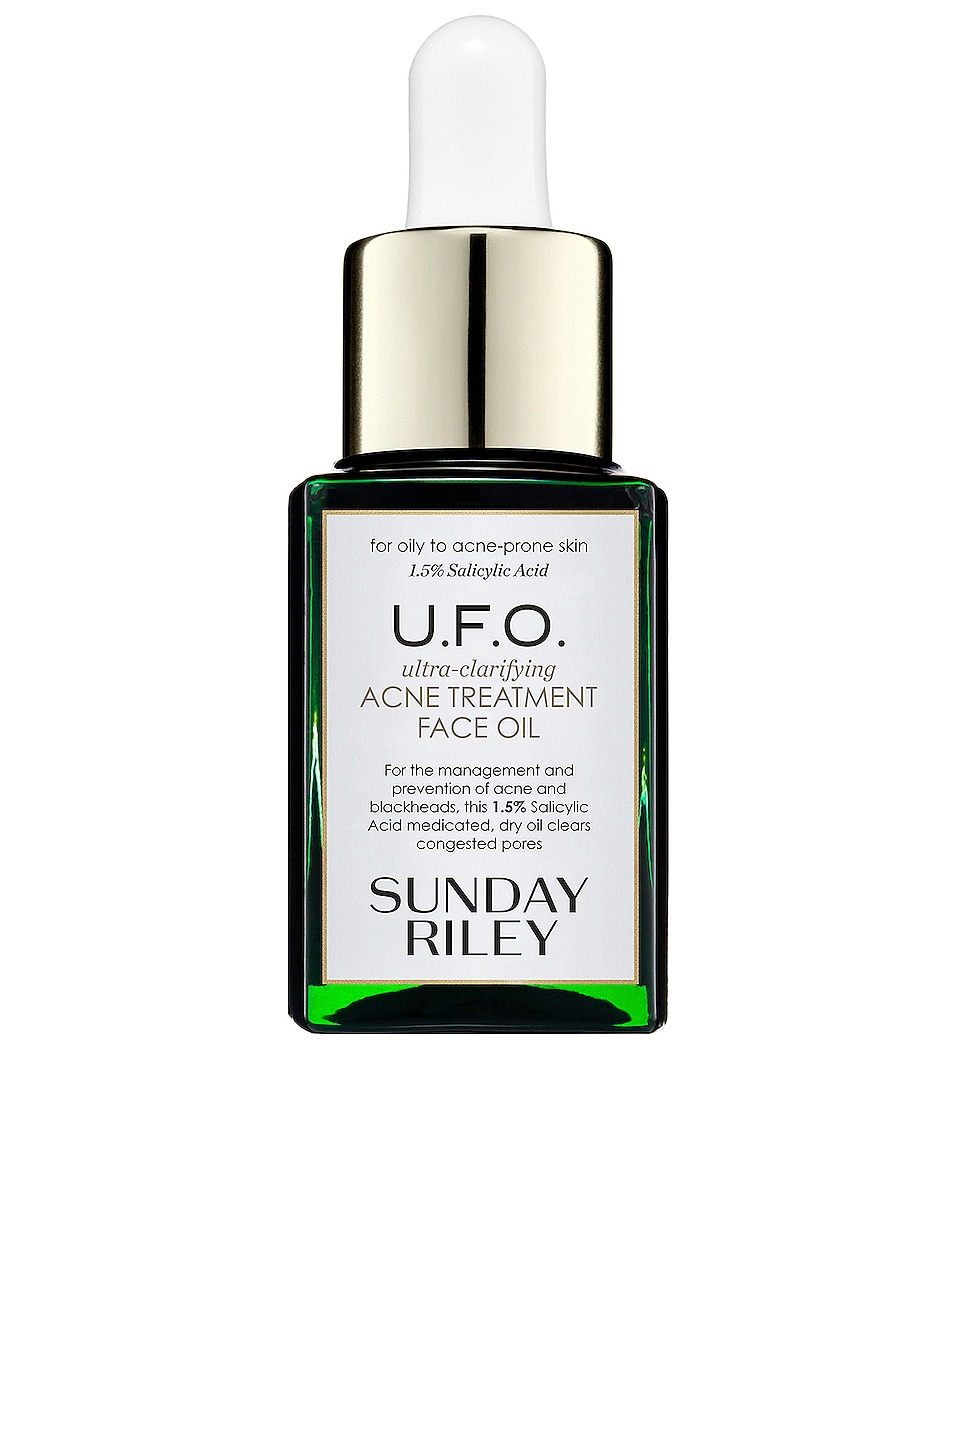 SUNDAY RILEY TRAVEL U.F.O. ULTRA-CLARIFYING FACE OIL